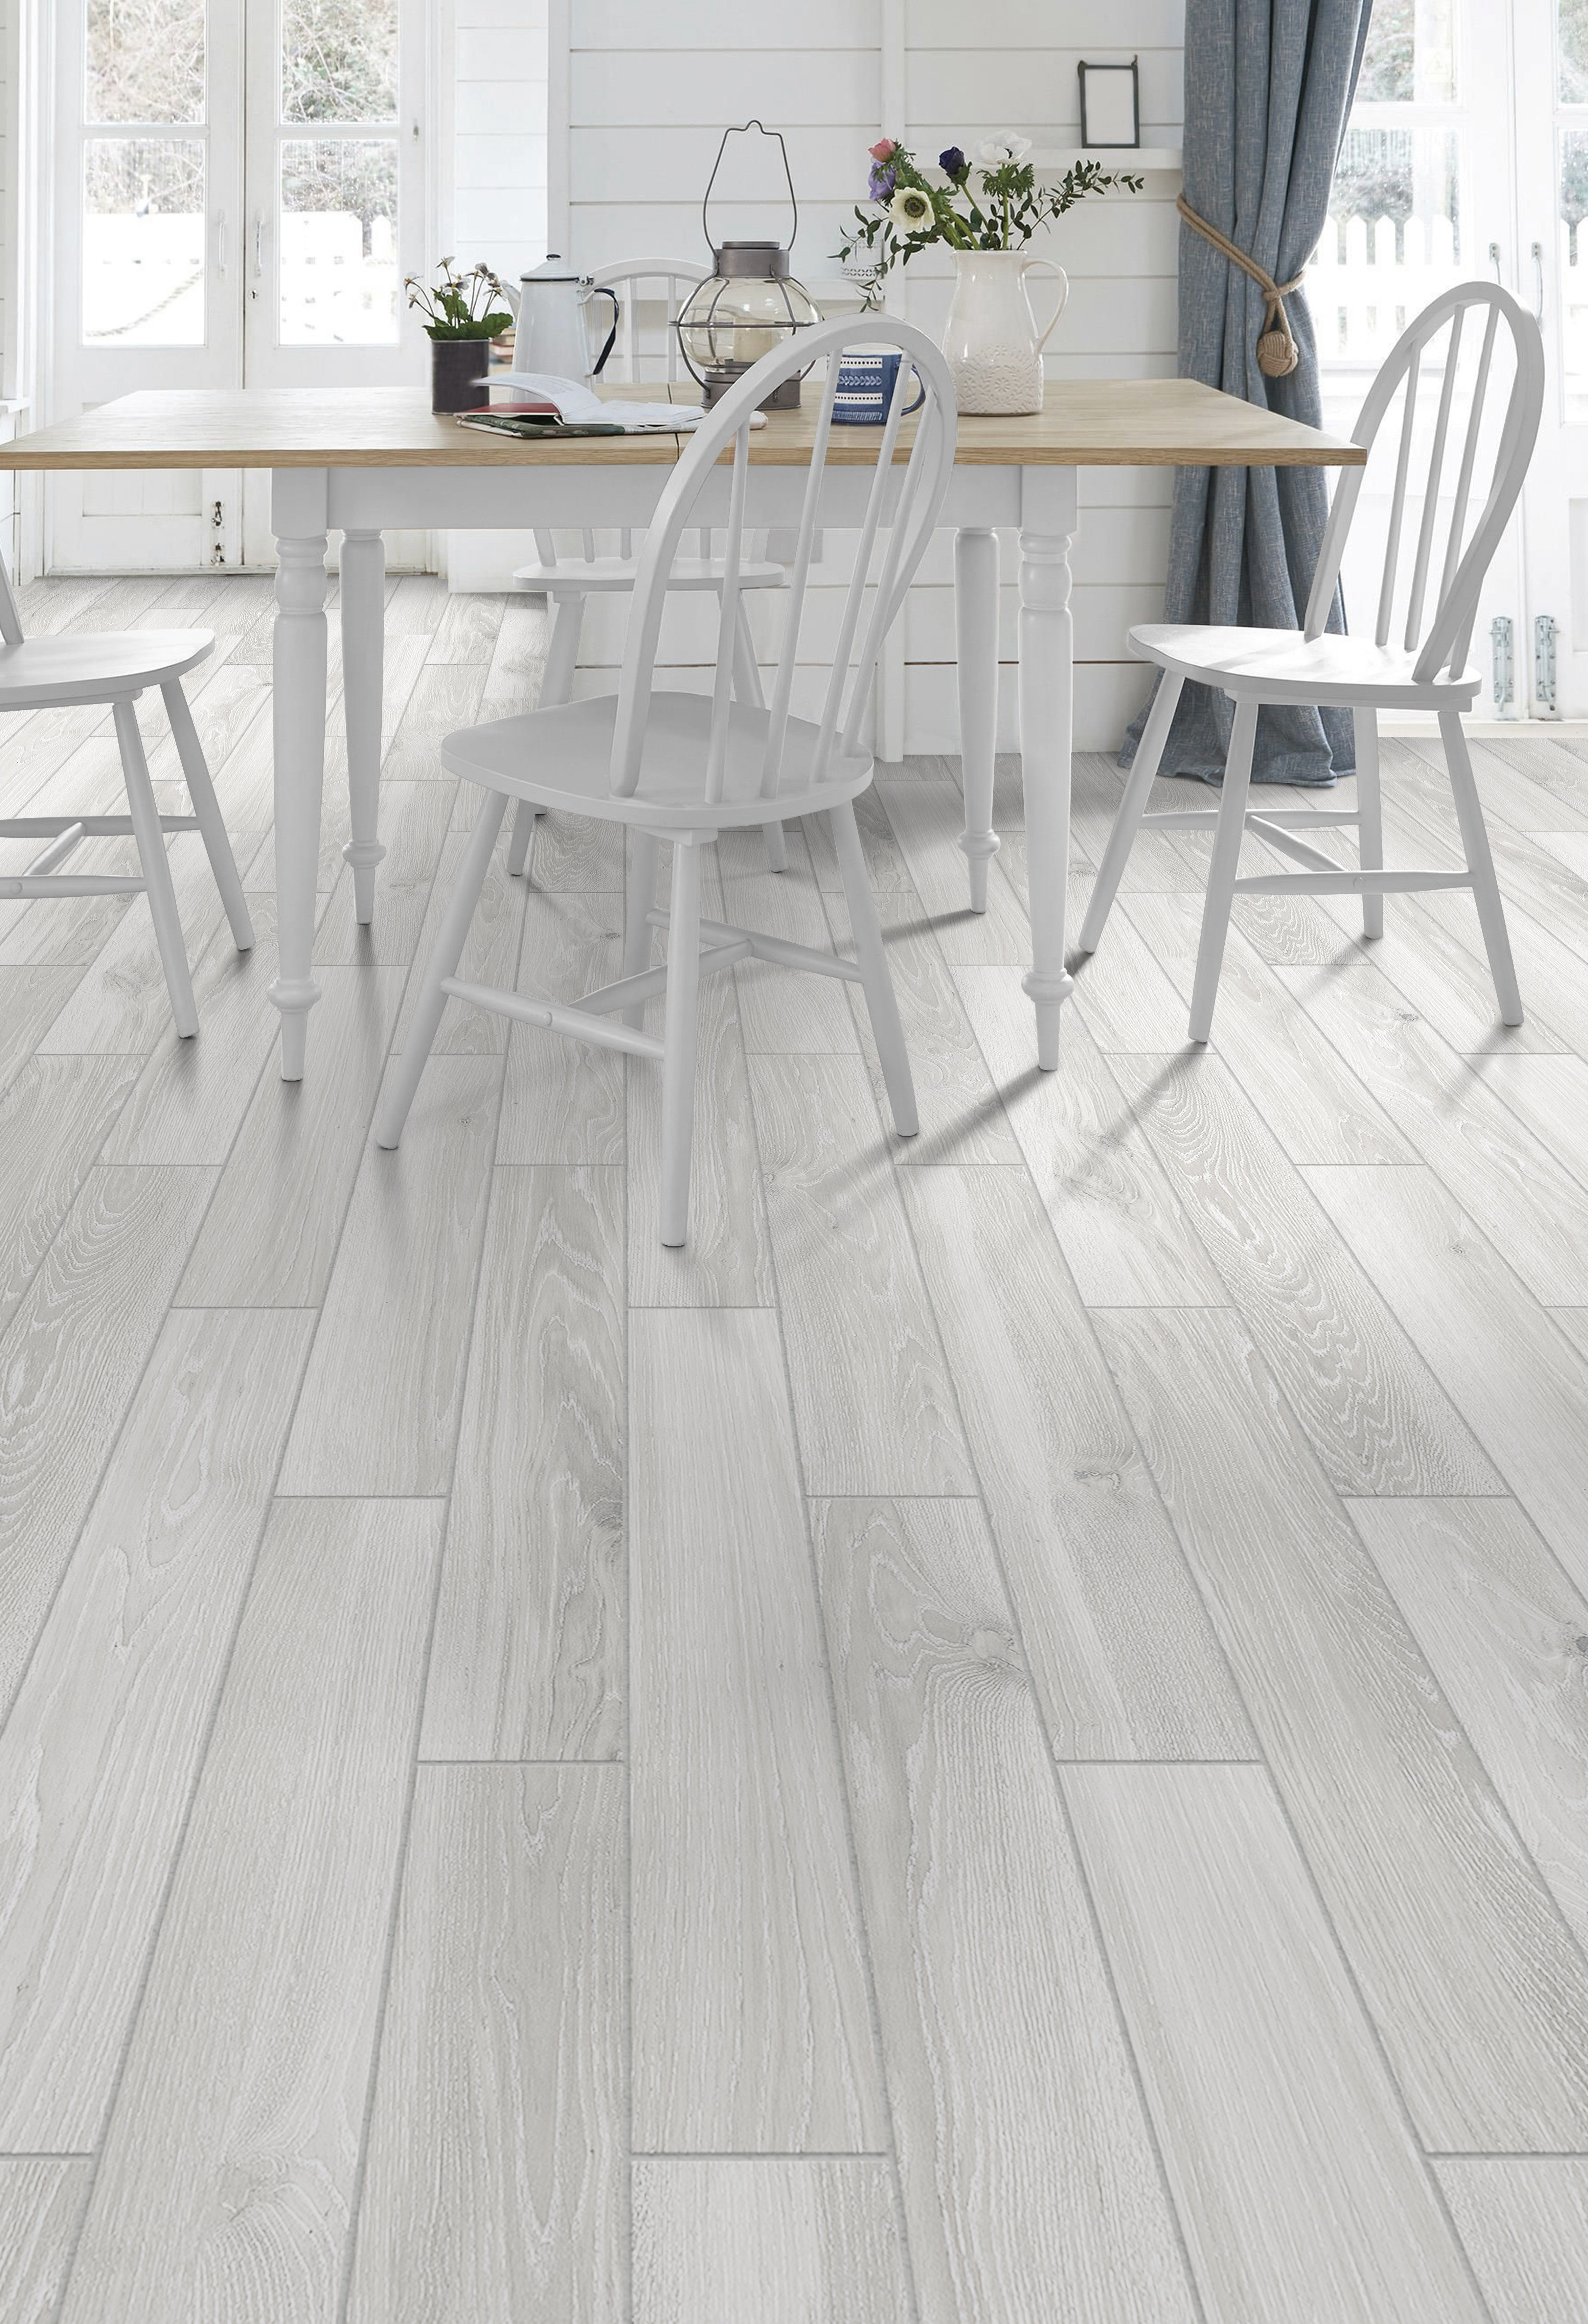 Our New Gray Wood Look Tile Is Perfect For Any Home Aspen